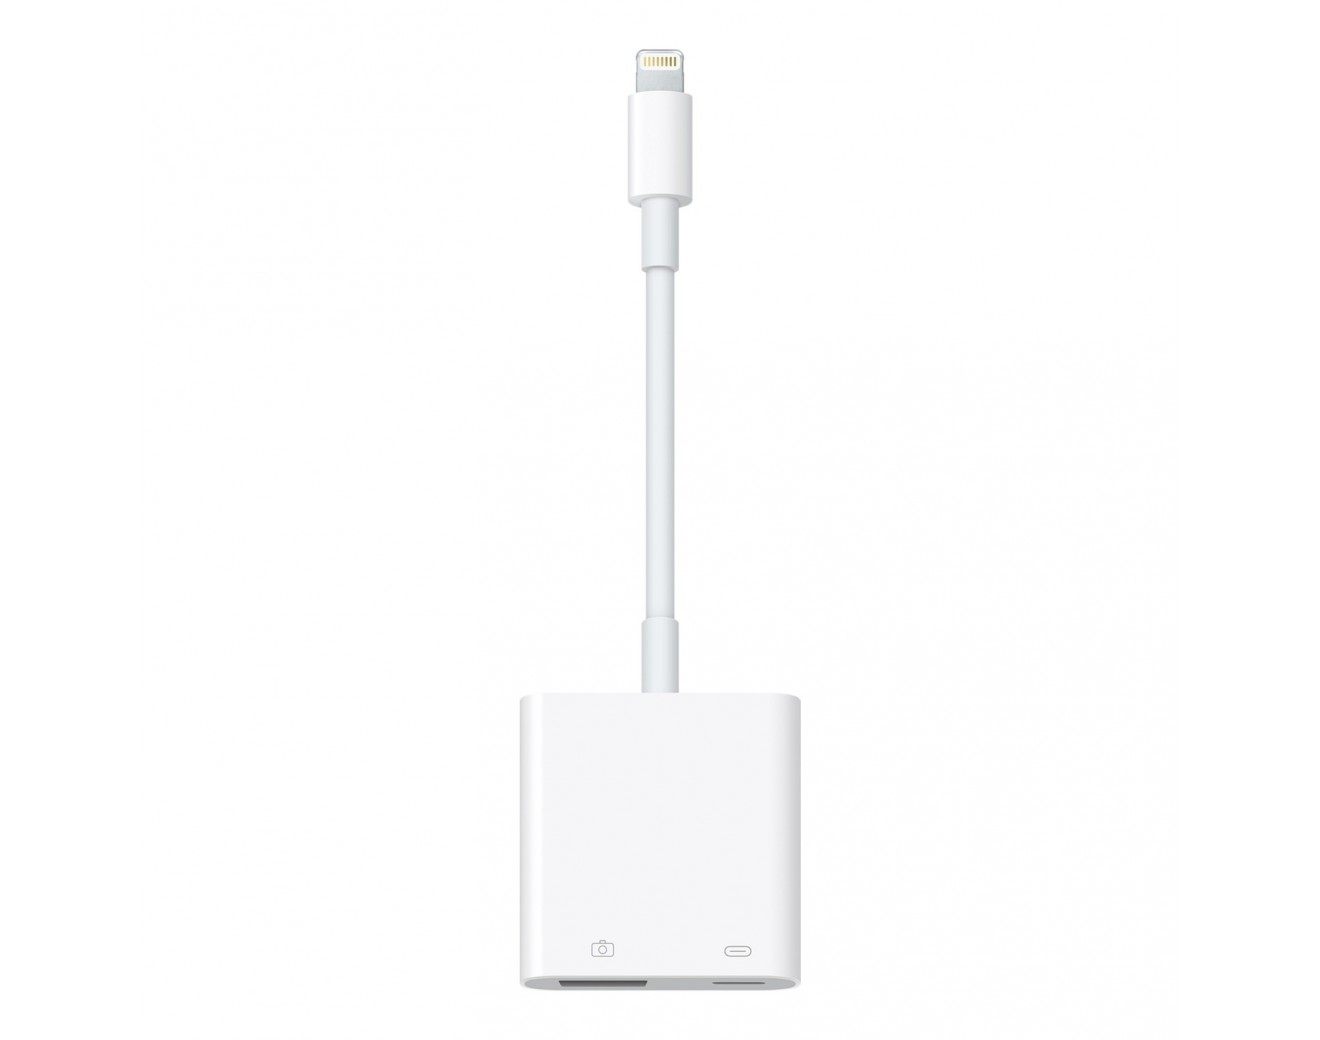 Apple Lightning to USB 3 Adapter